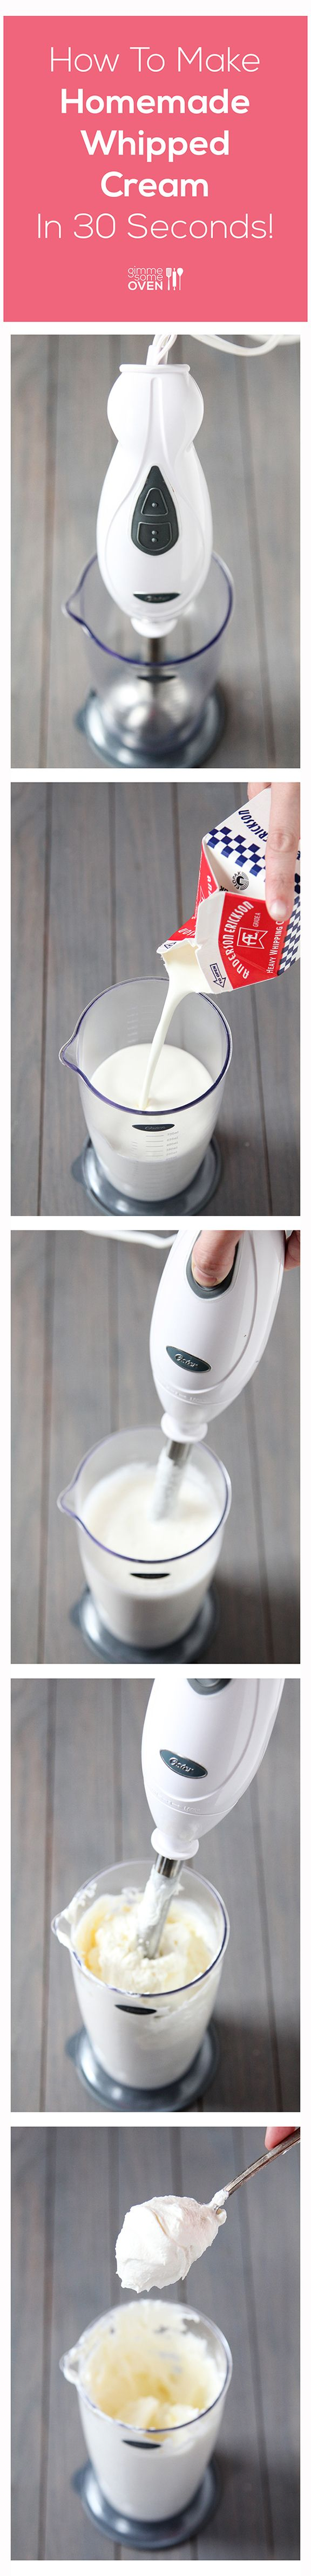 How To Make Homemade Whipped Cream In 30 Seconds | gimmesomeoven.com